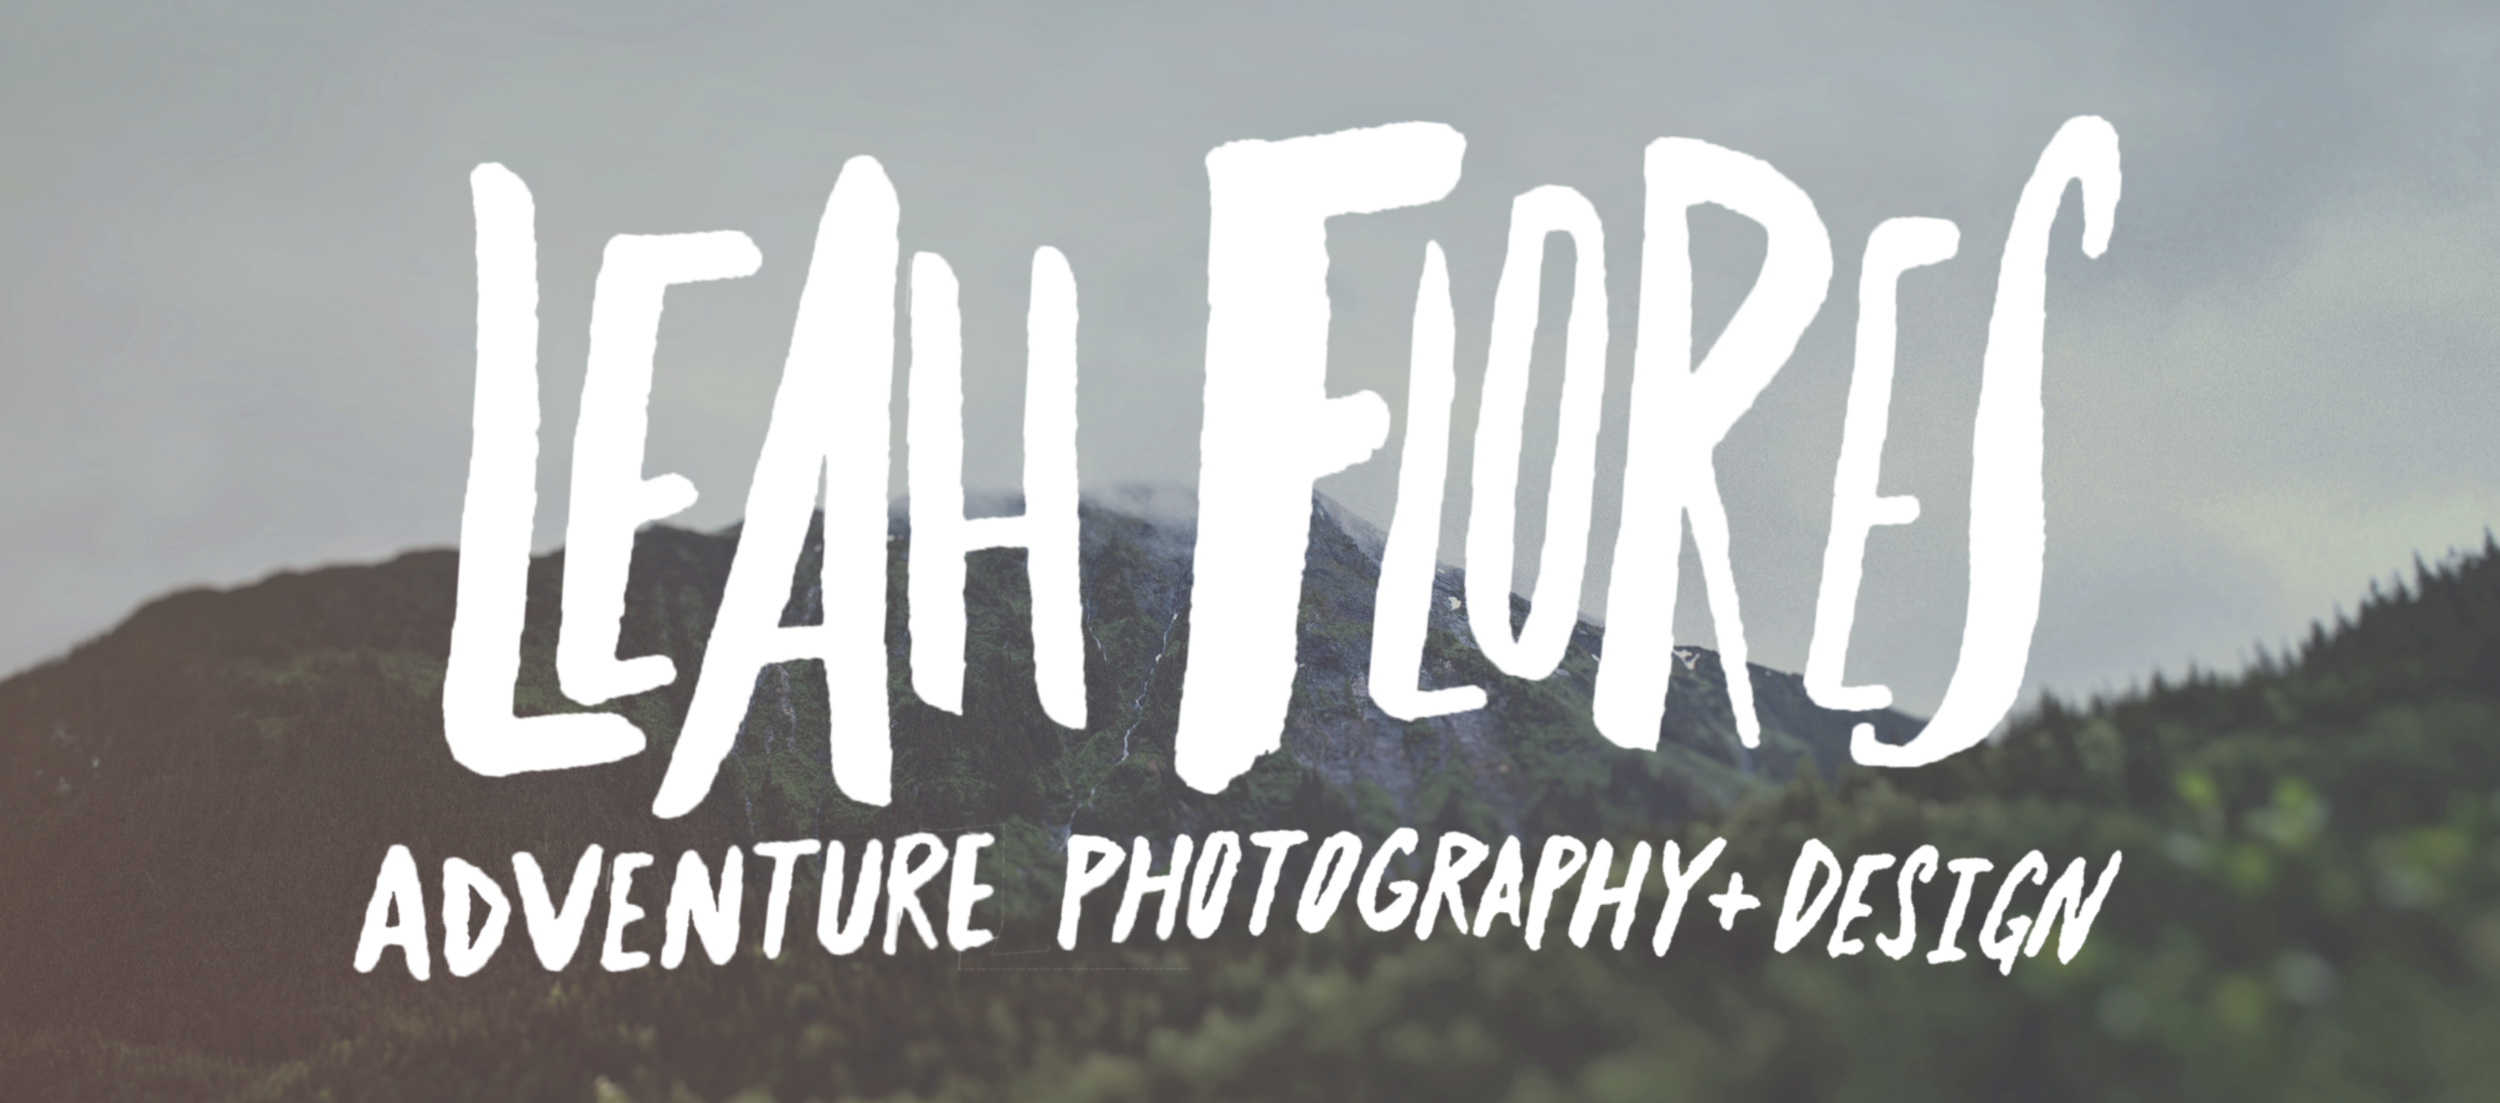 Leah Flores Header Image with logo